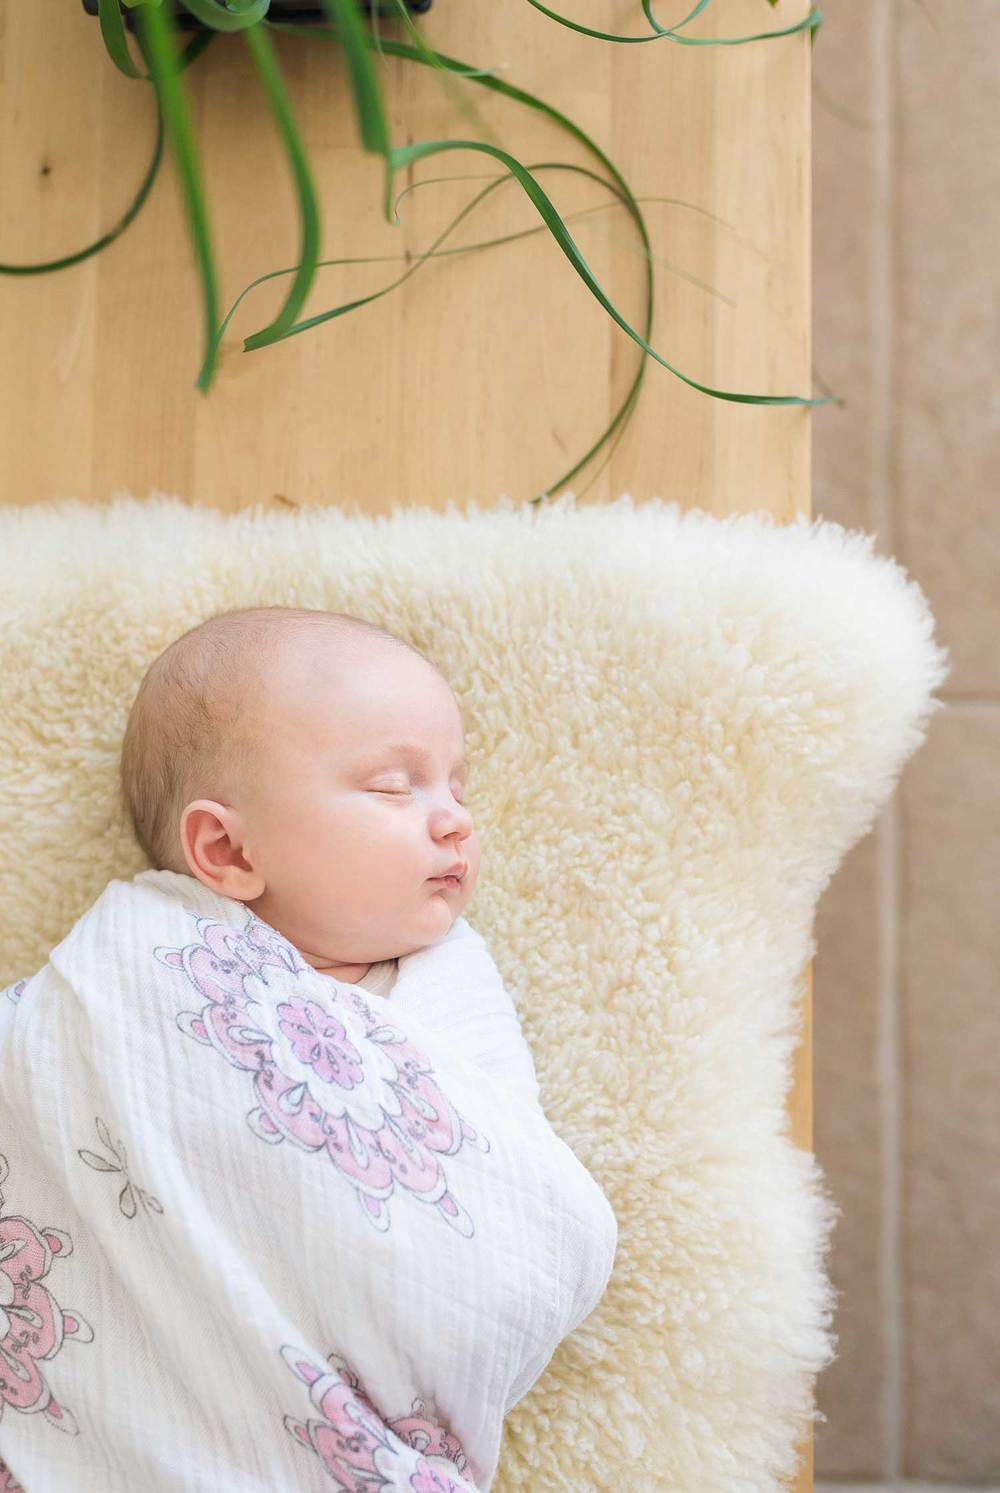 Woodlands At Home Newborn Photographer | Donya Luana Photography | Based in Magnolia, TX